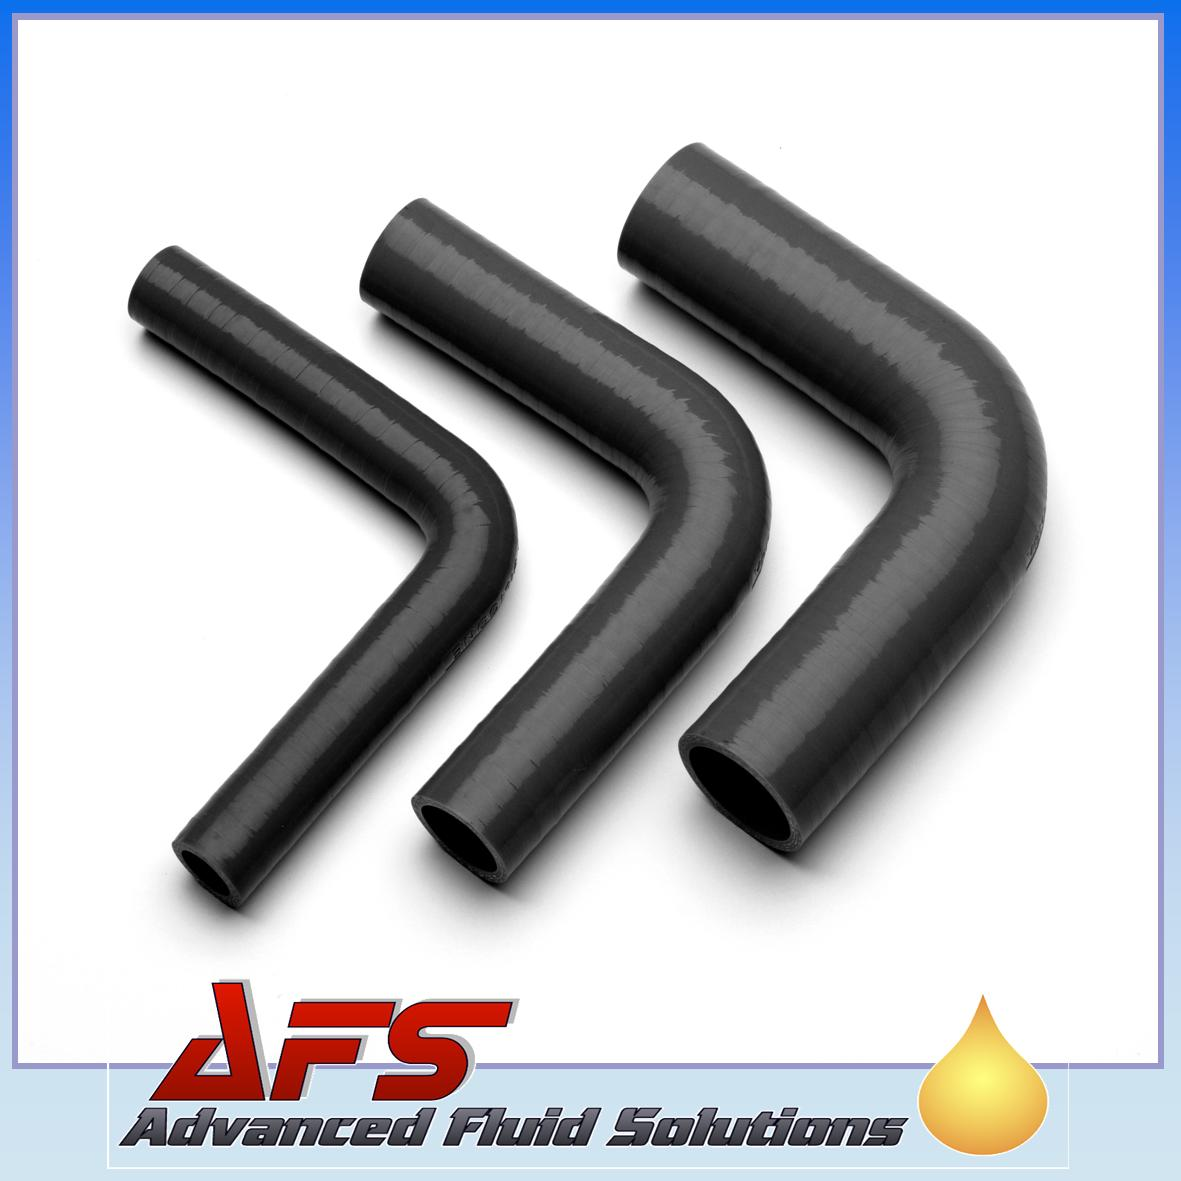 mm black degree silicone elbow hose pipe 57mm 2 1 4 black 90deg degree silicone elbow hose pipe